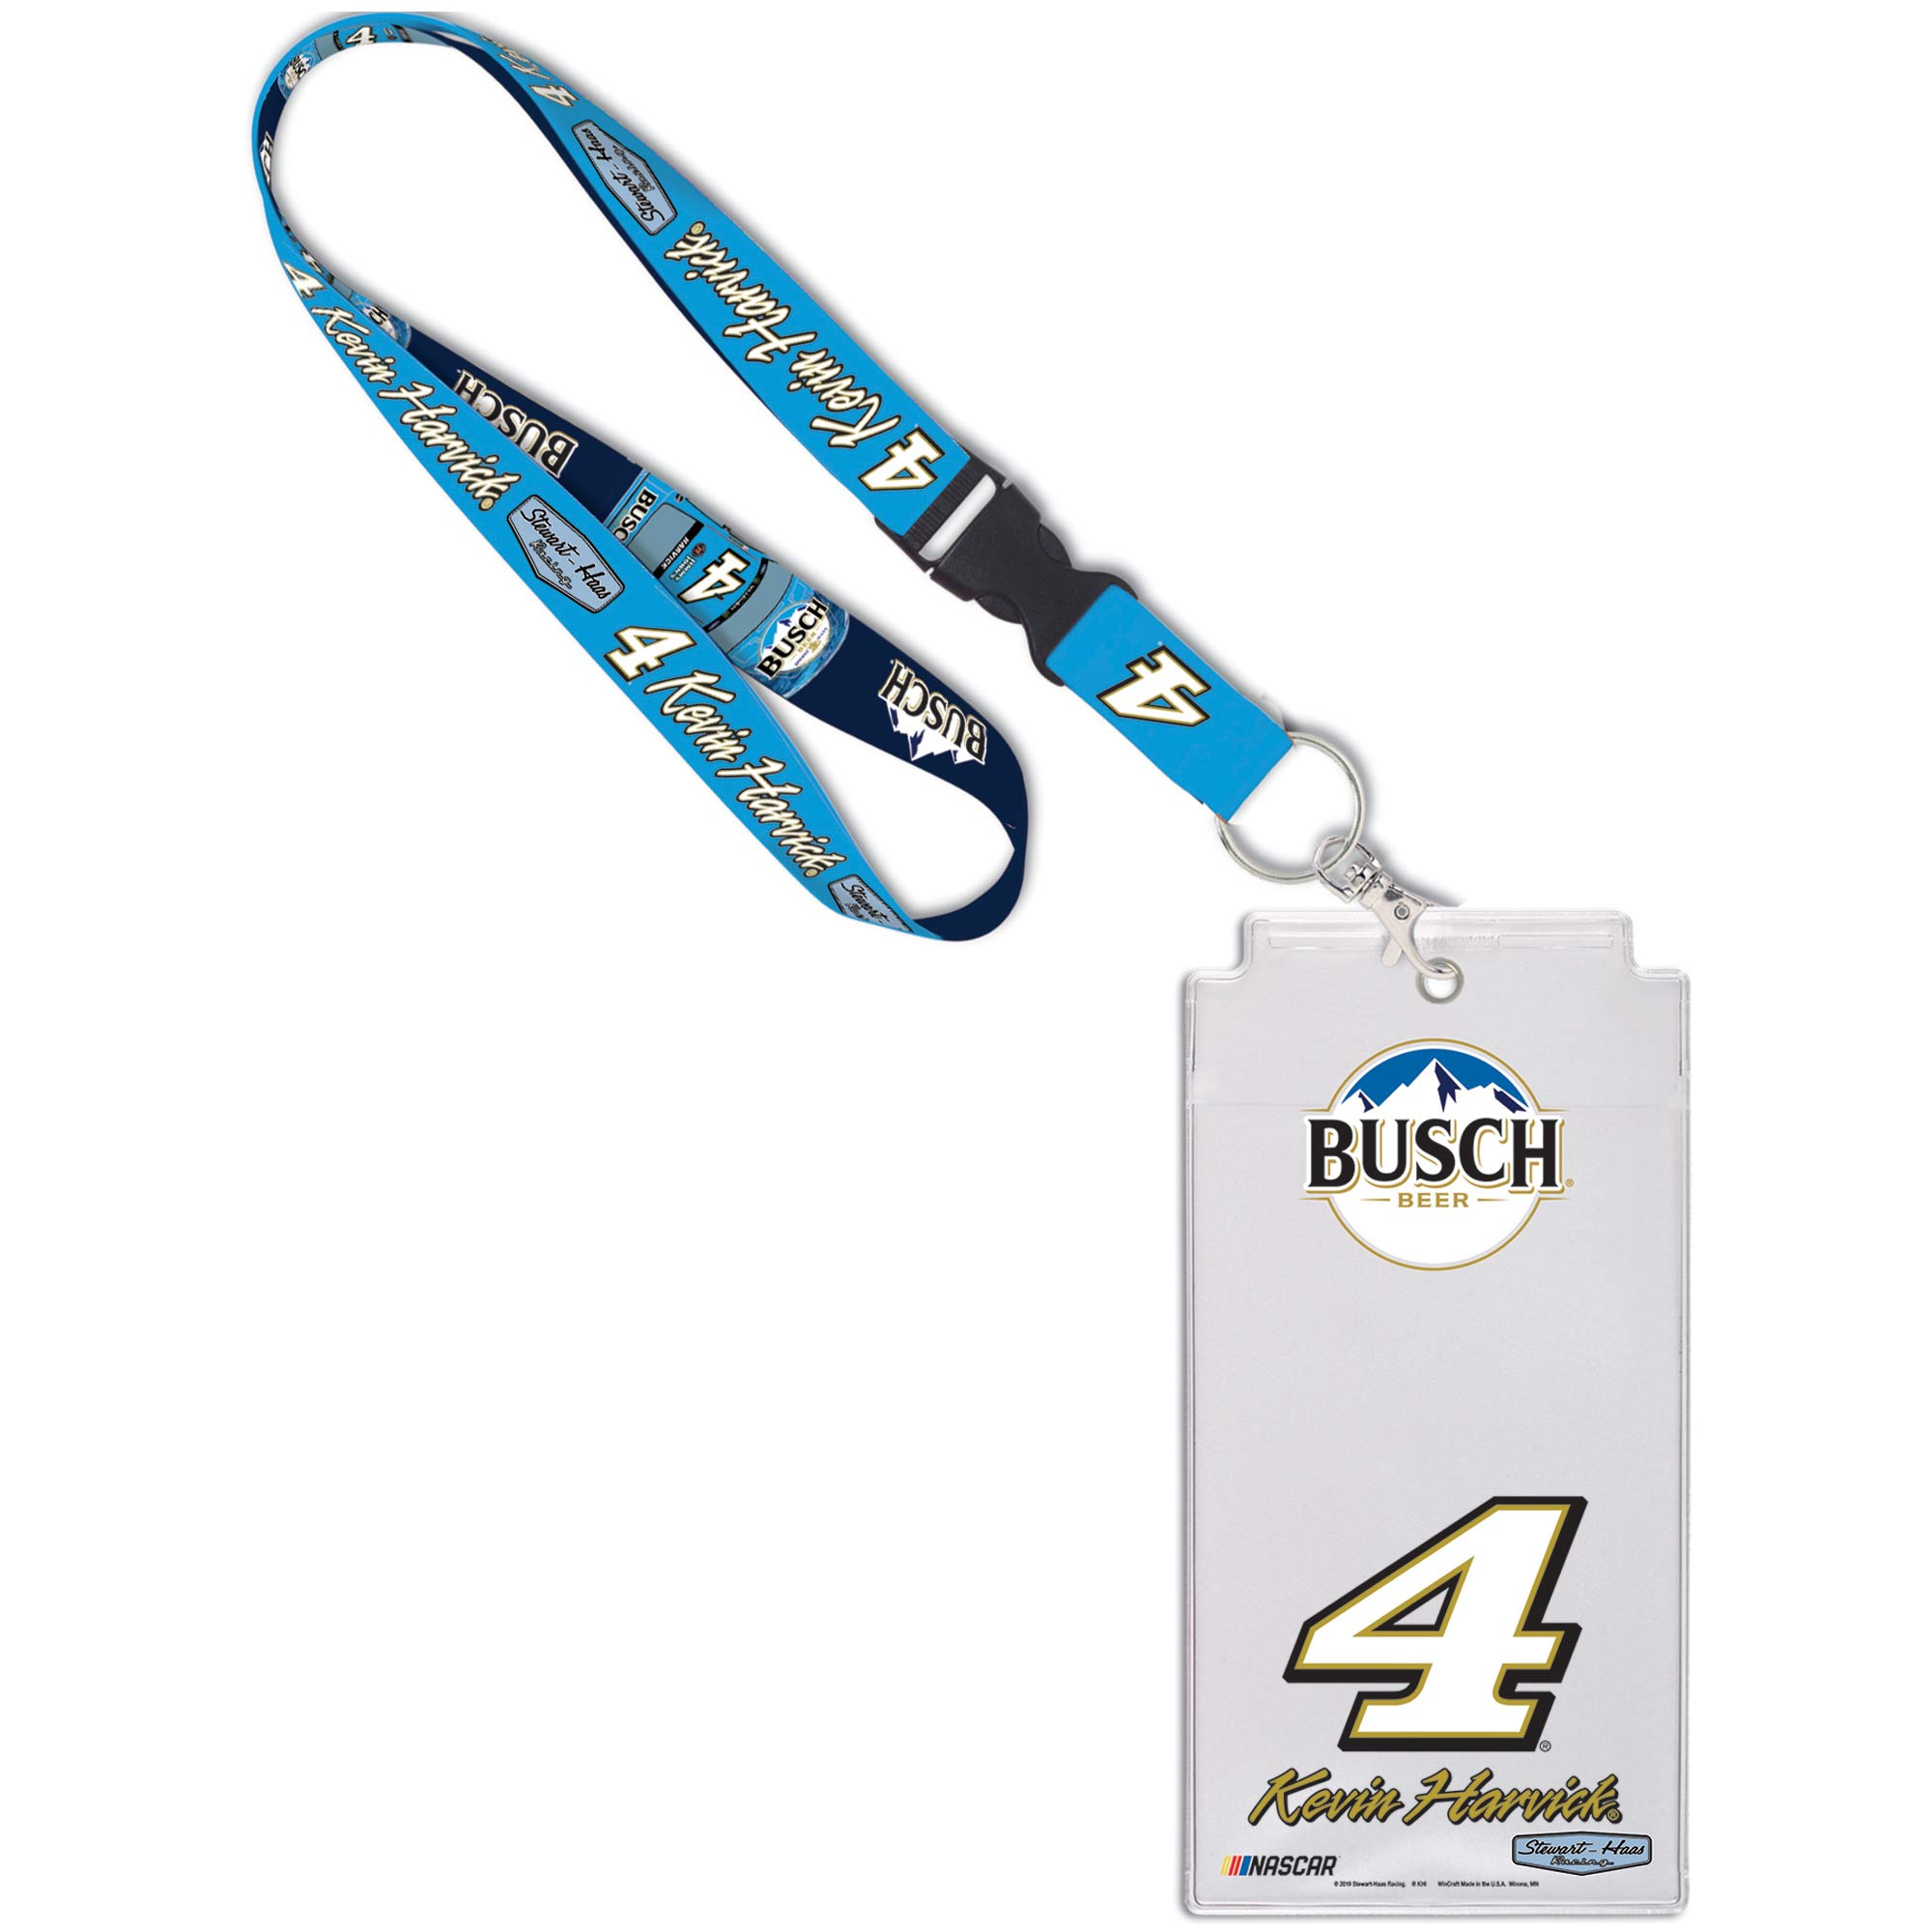 Kevin Harvick WinCraft Busch Driver Name & Number Credential Holder - No Size